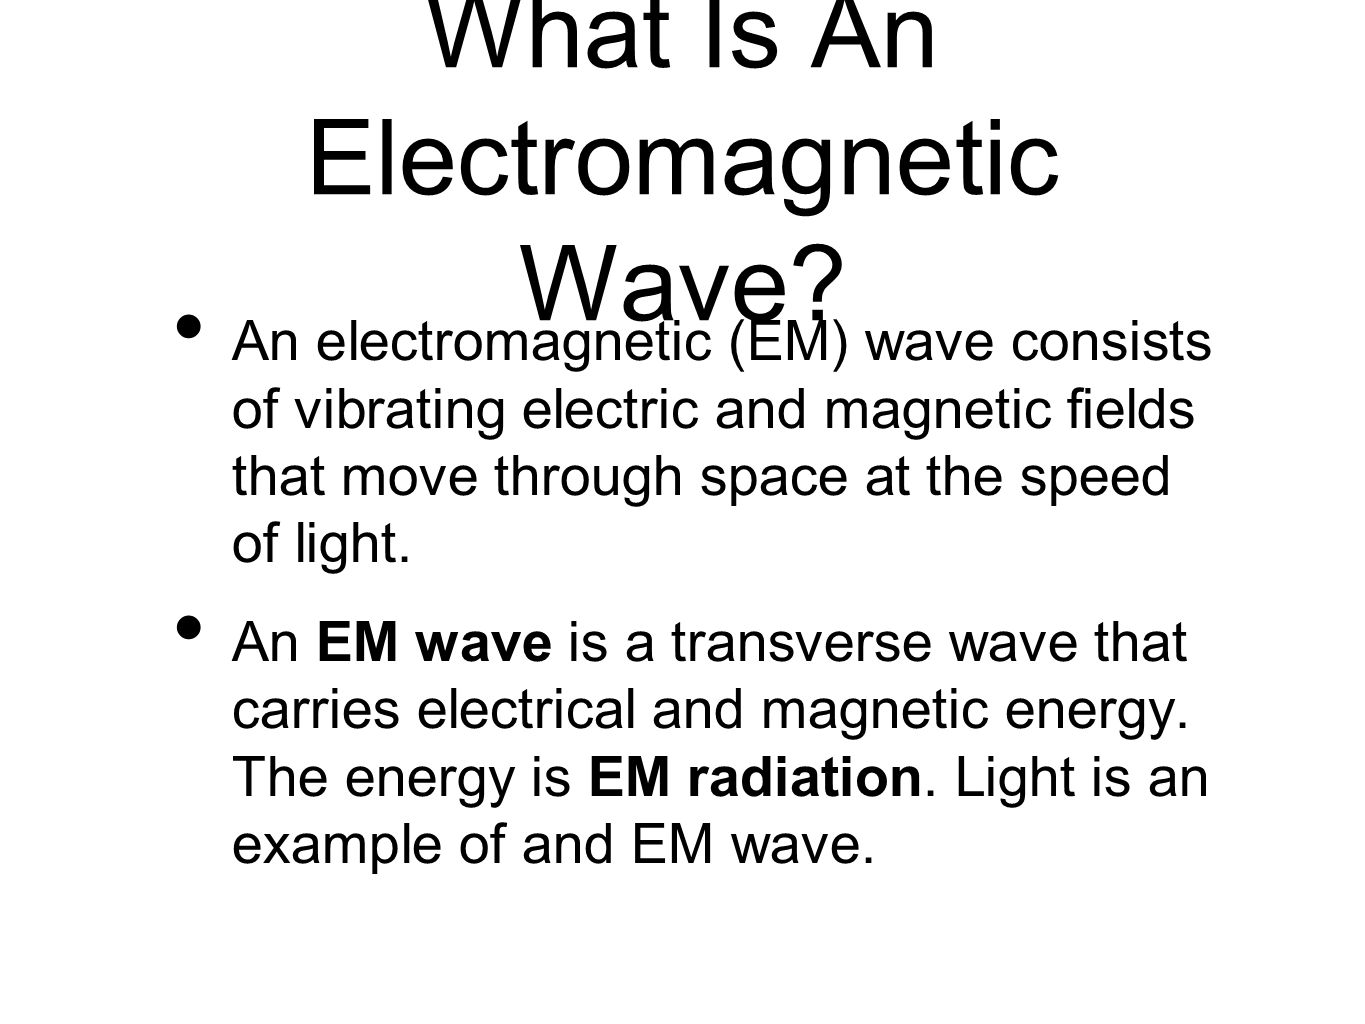 What Is An Electromagnetic Wave? An electromagnetic (EM) wave consists of vibrating electric and magnetic fields that move through space at the speed